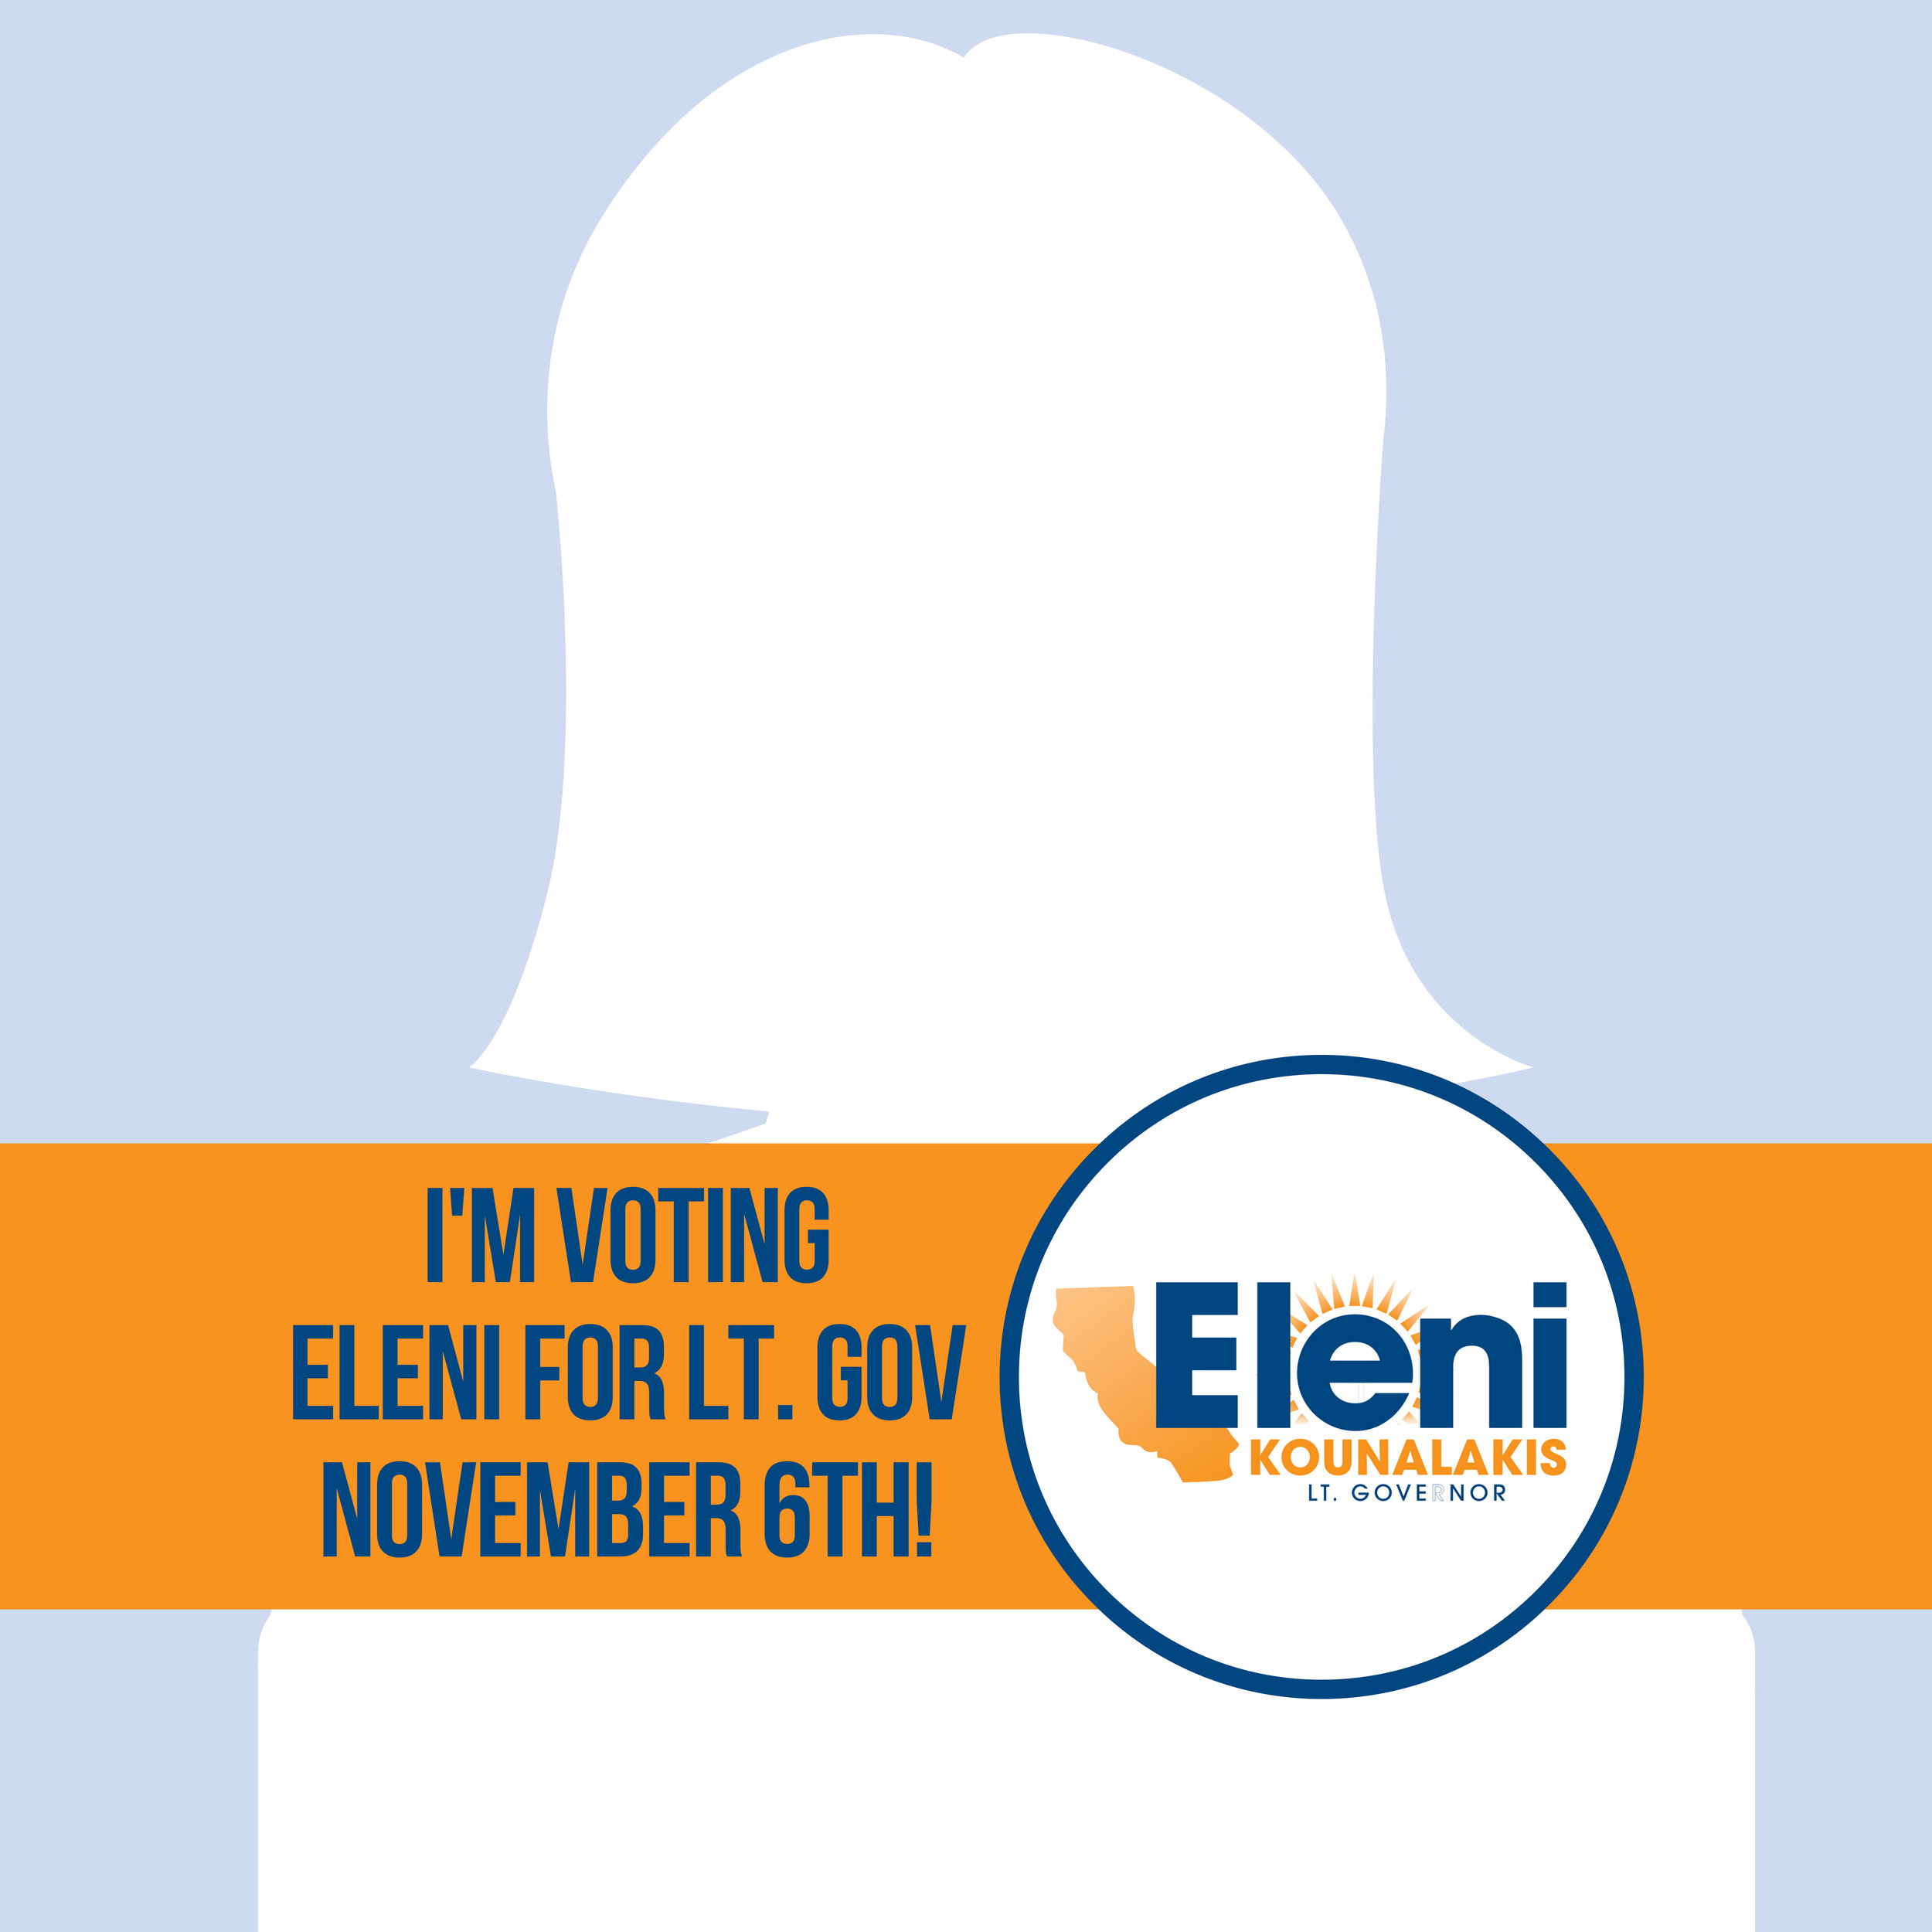 I'm Voting Eleni - Facebook Edit.jpg